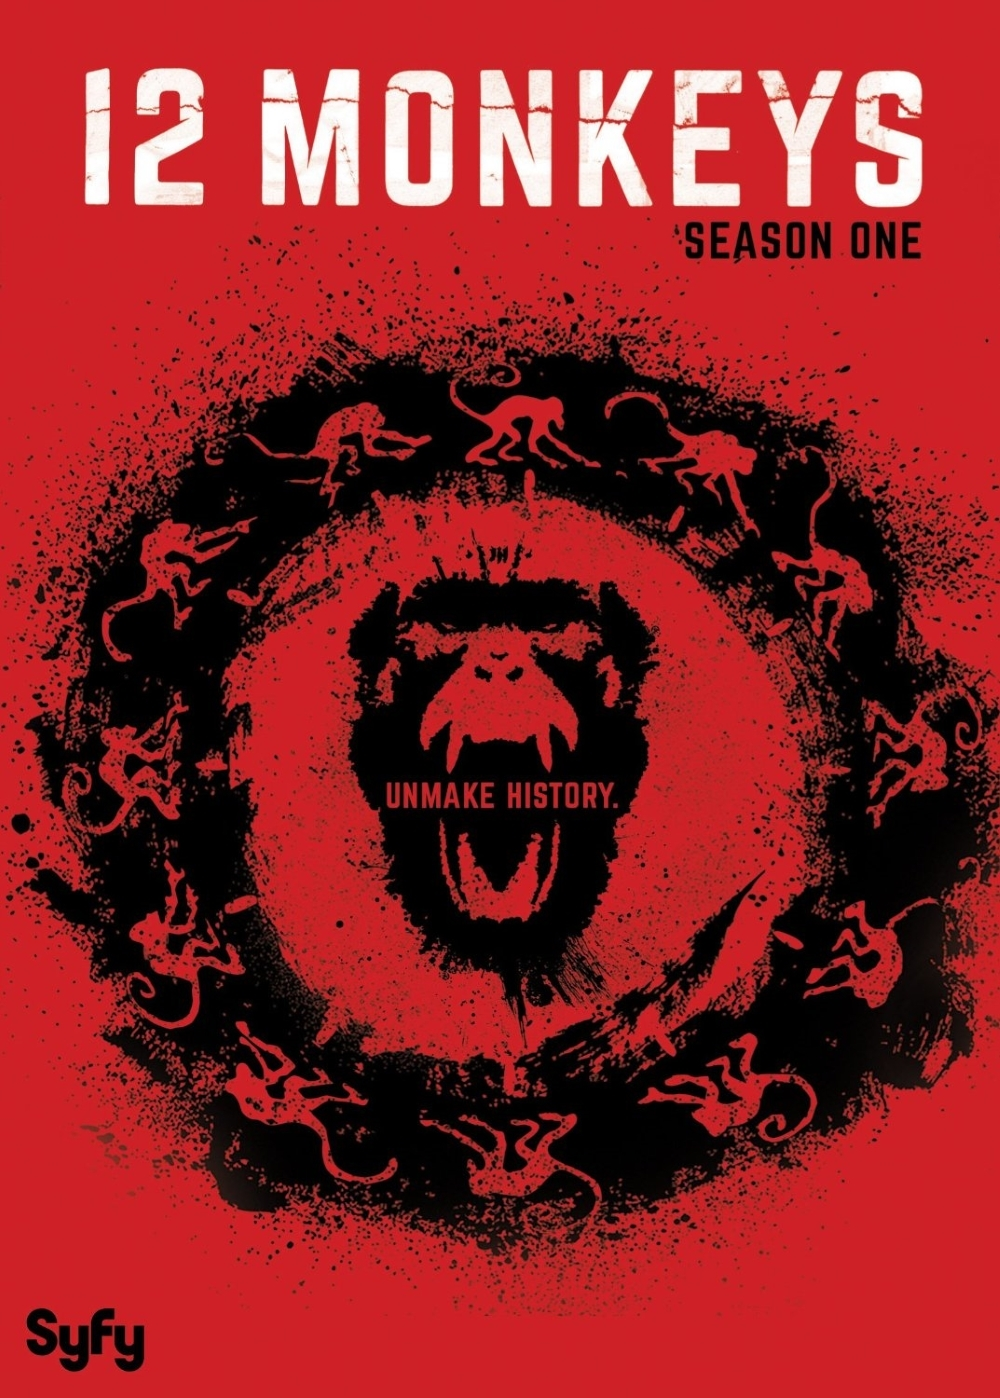 12 monkeys first season one 1  dvd 2016 3 disc  aaron stanford  amanda schull